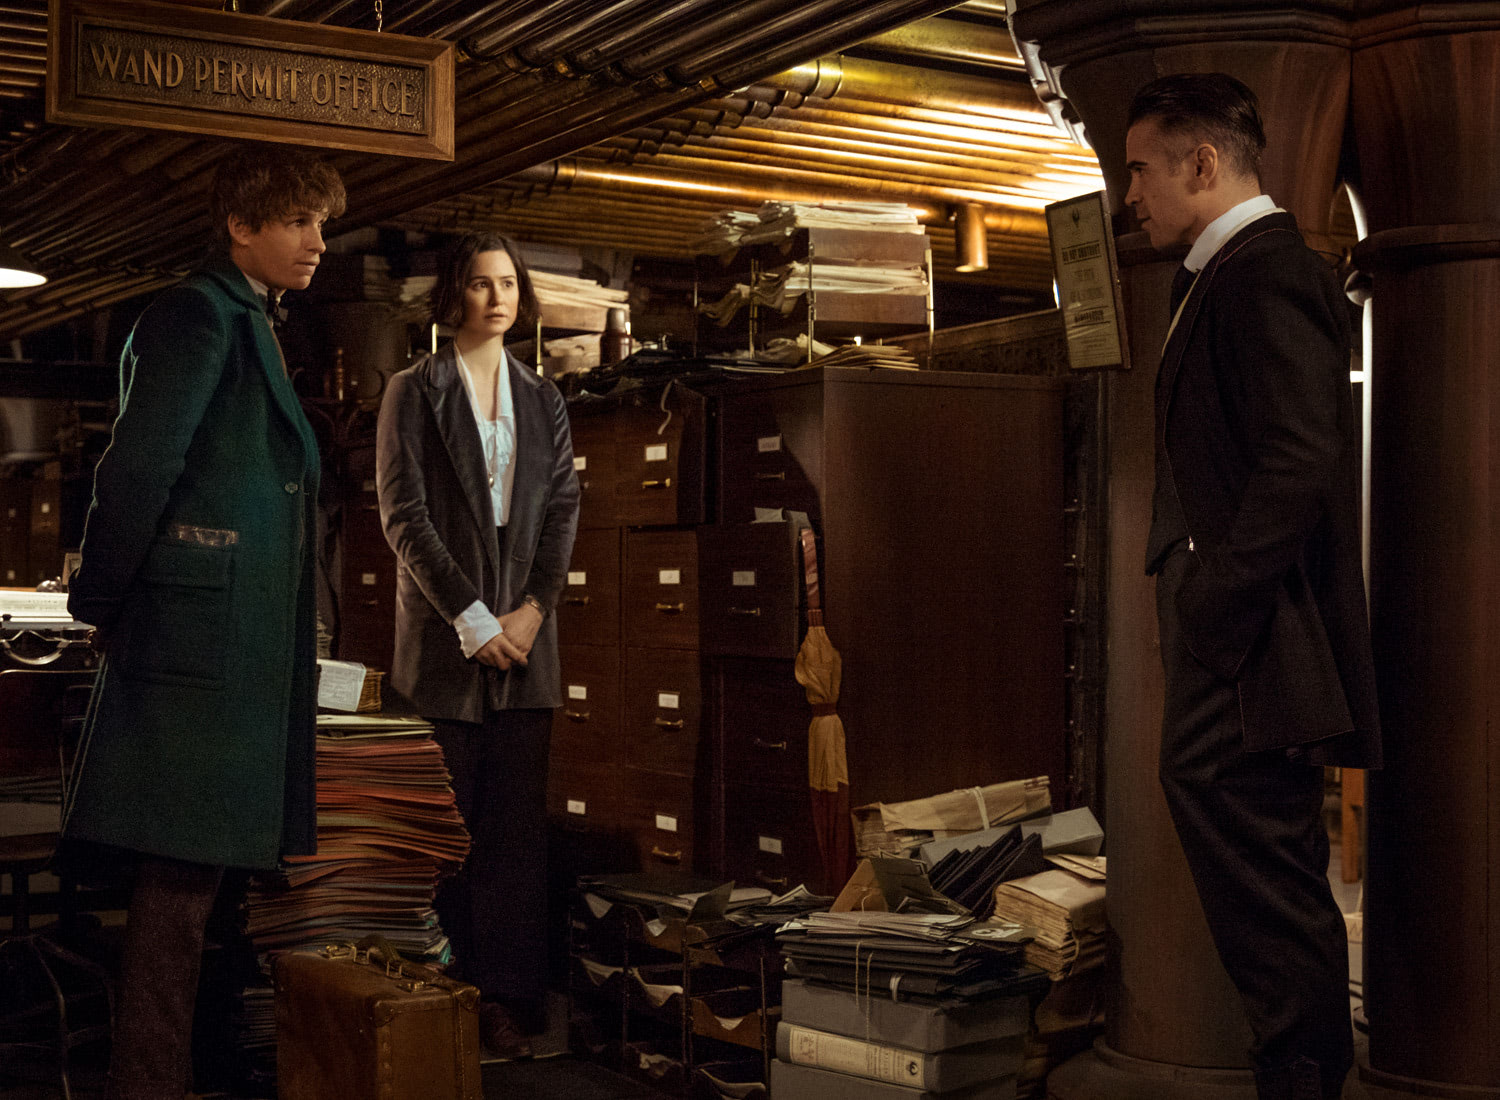 Newt and Tina in the Wand Permit Office